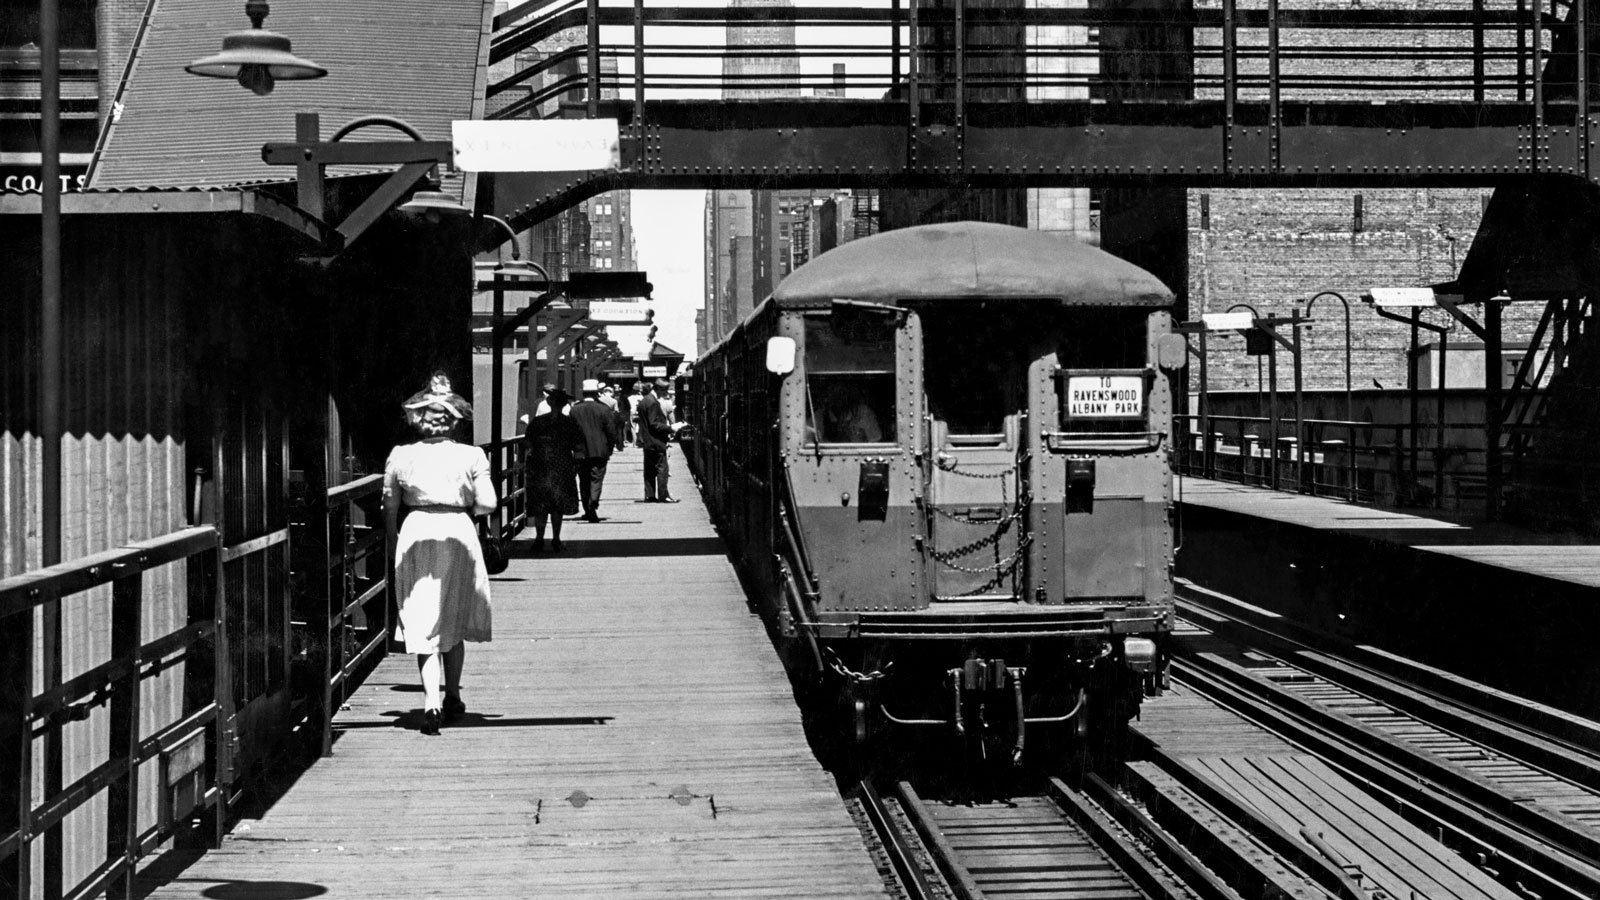 Train pulls into Quincy Station in 1940s